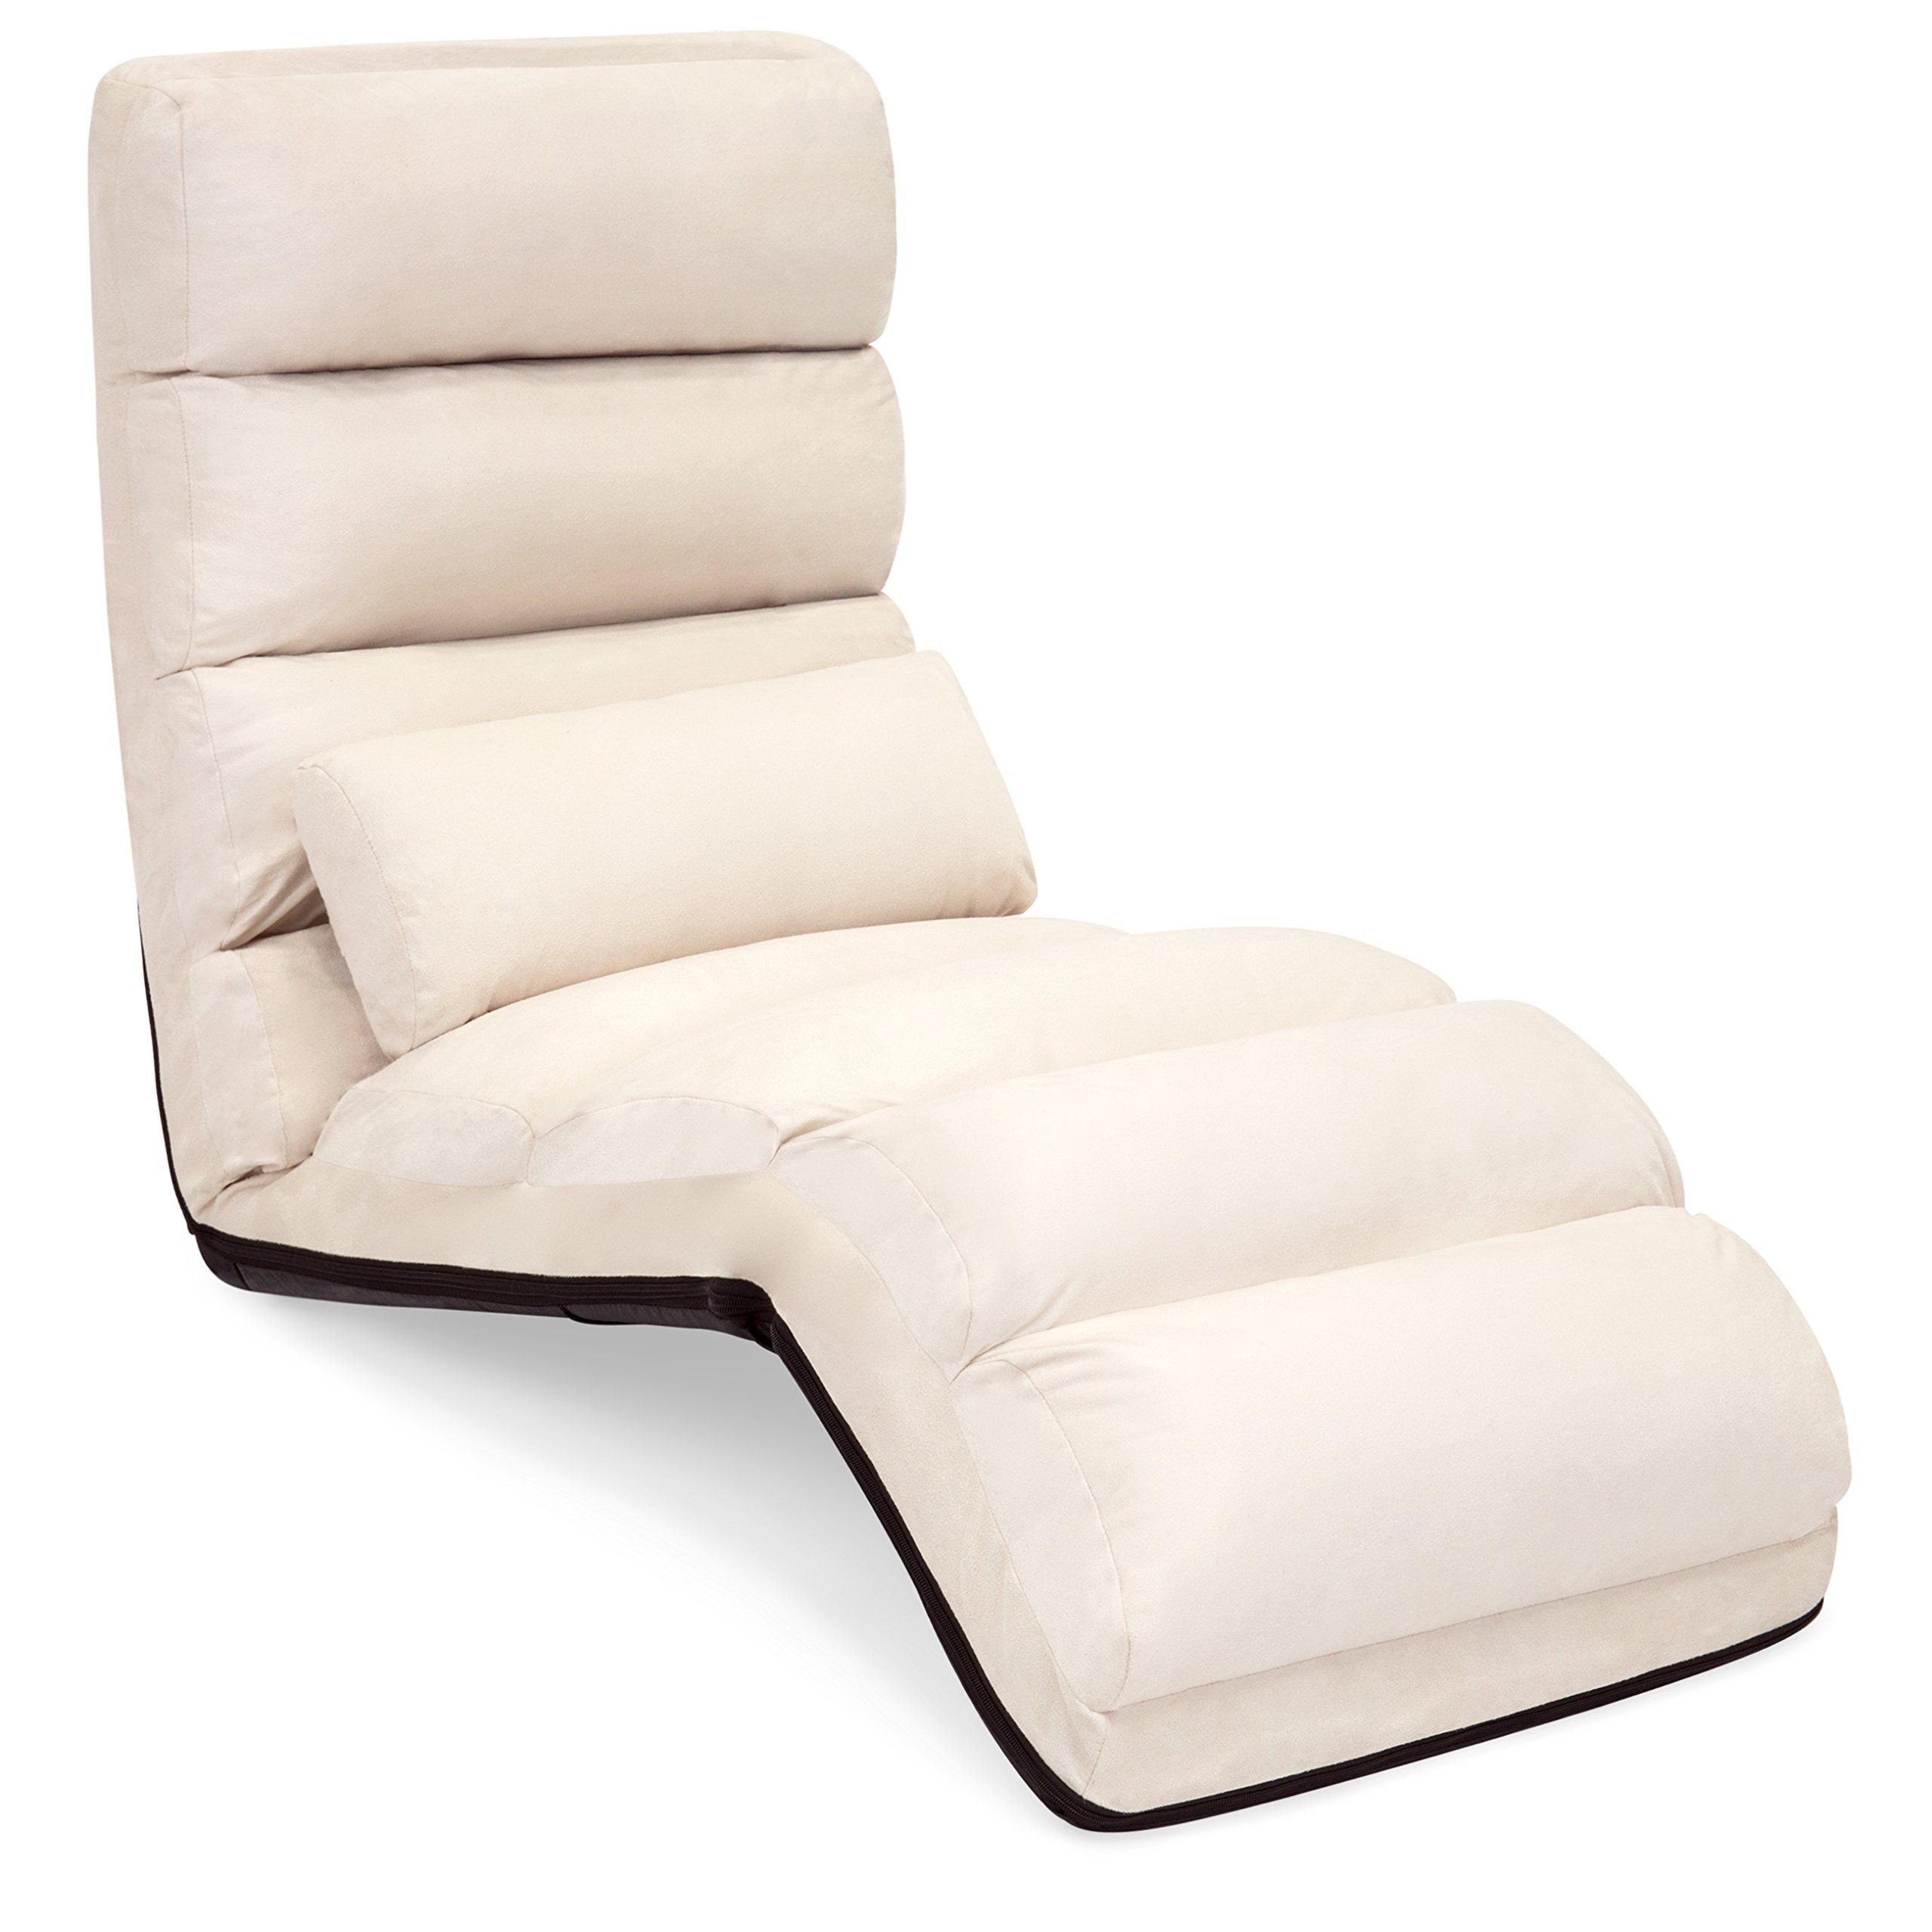 Best Choice Products Folding Floor Lounge Sofa Chair w/Pillow for Gaming, Lounging - Beige by Best Choice Products